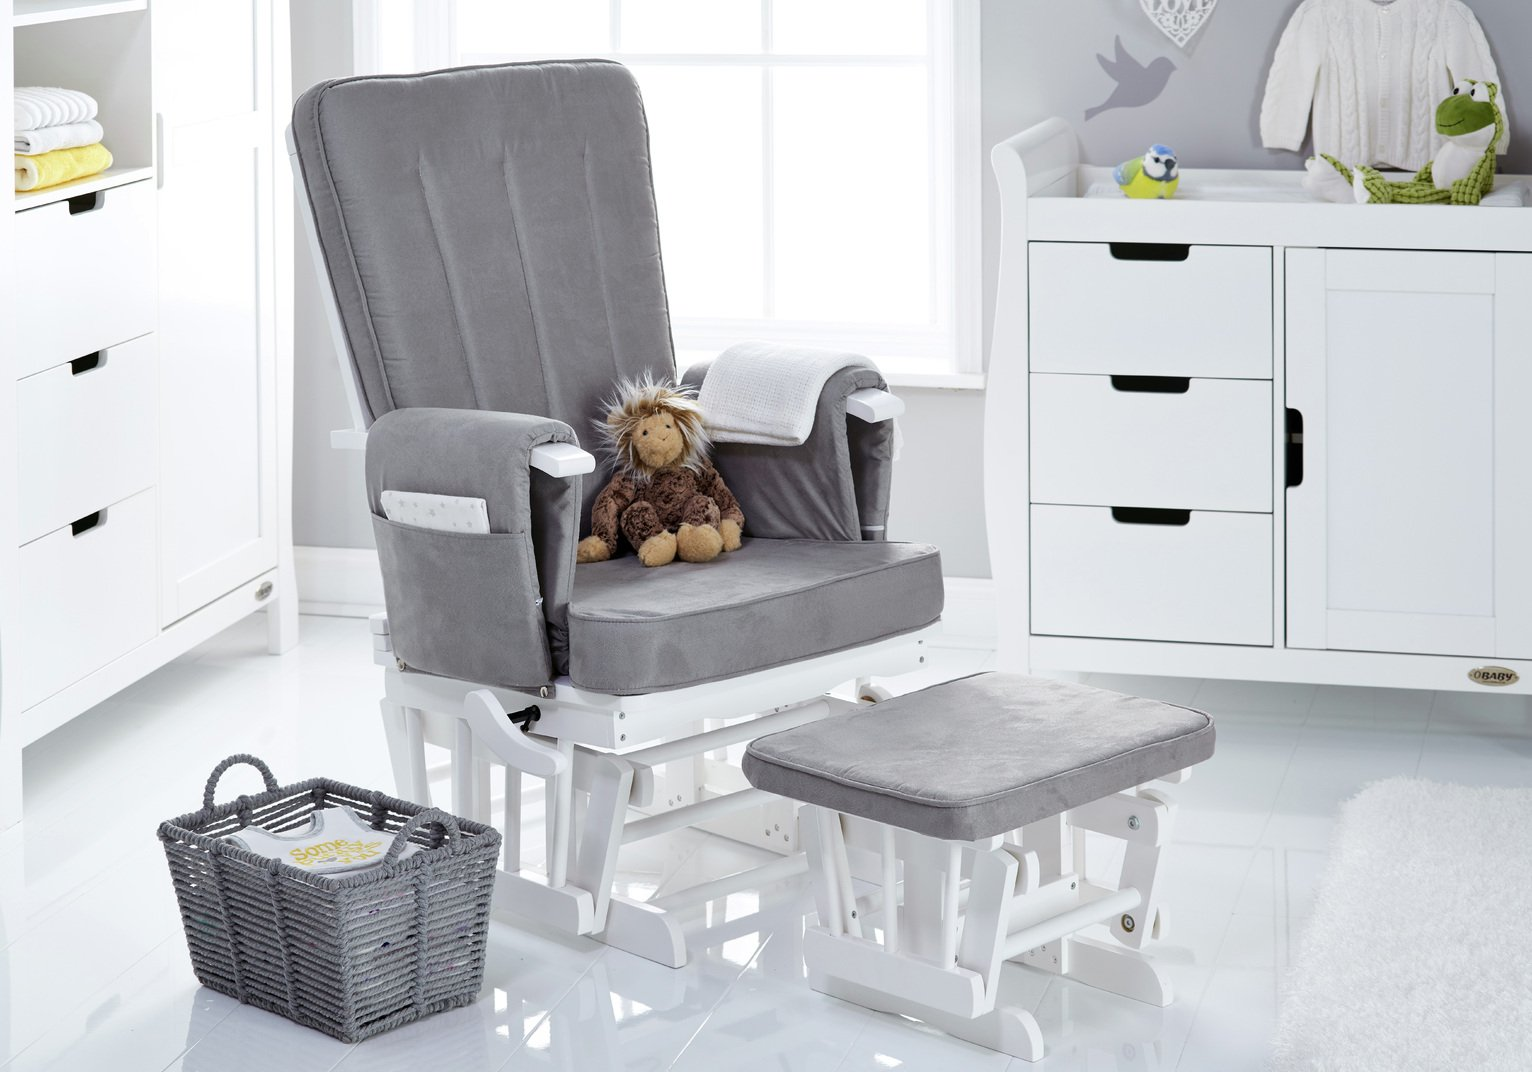 Obaby Deluxe Reclining Glider Chair and Stool - White & Grey